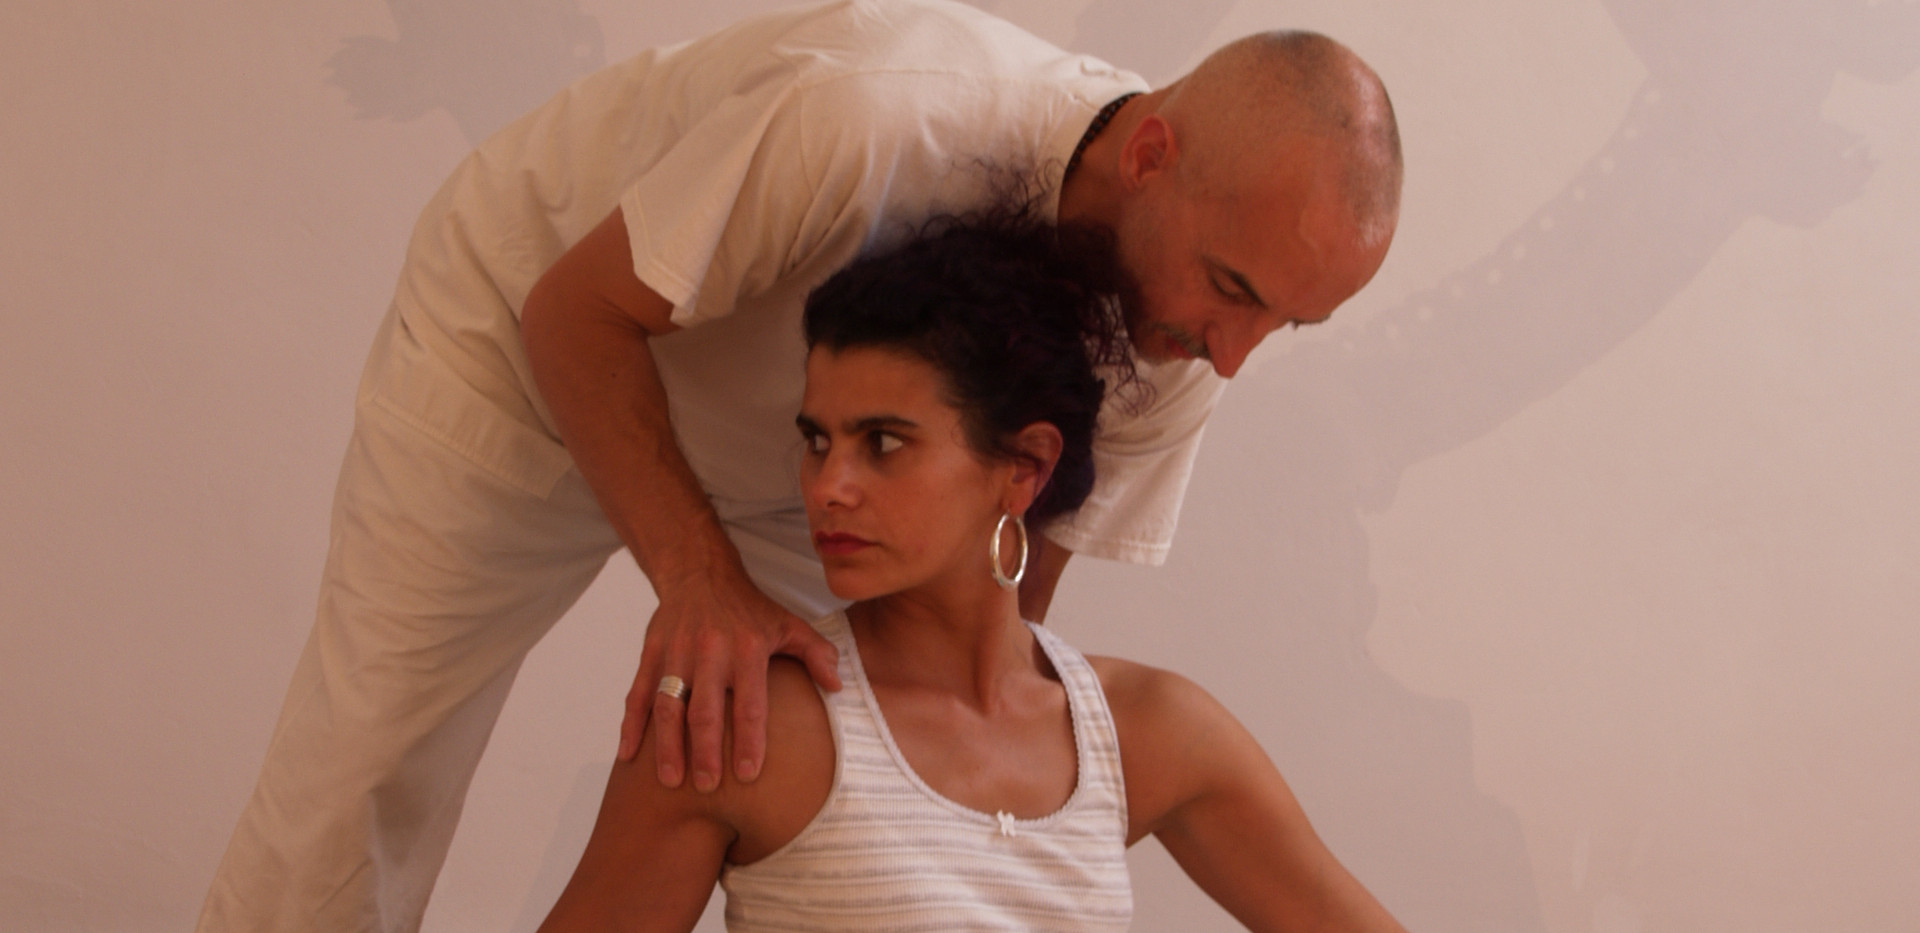 Assisting spinal twist